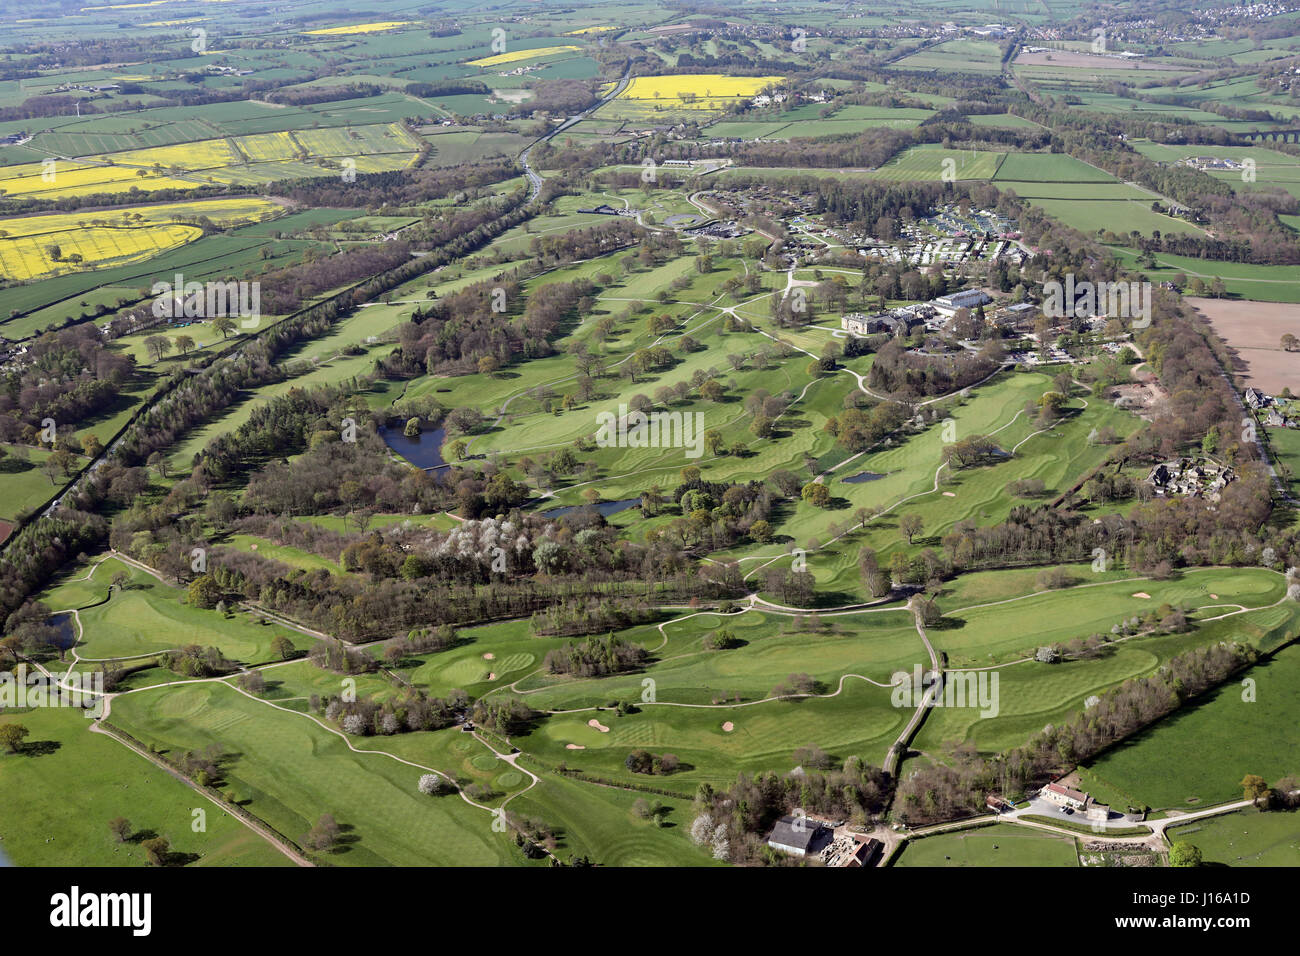 aerial view of Rudding Park golf course & hotel, Harrogate, Yorkshire, UK Stock Photo